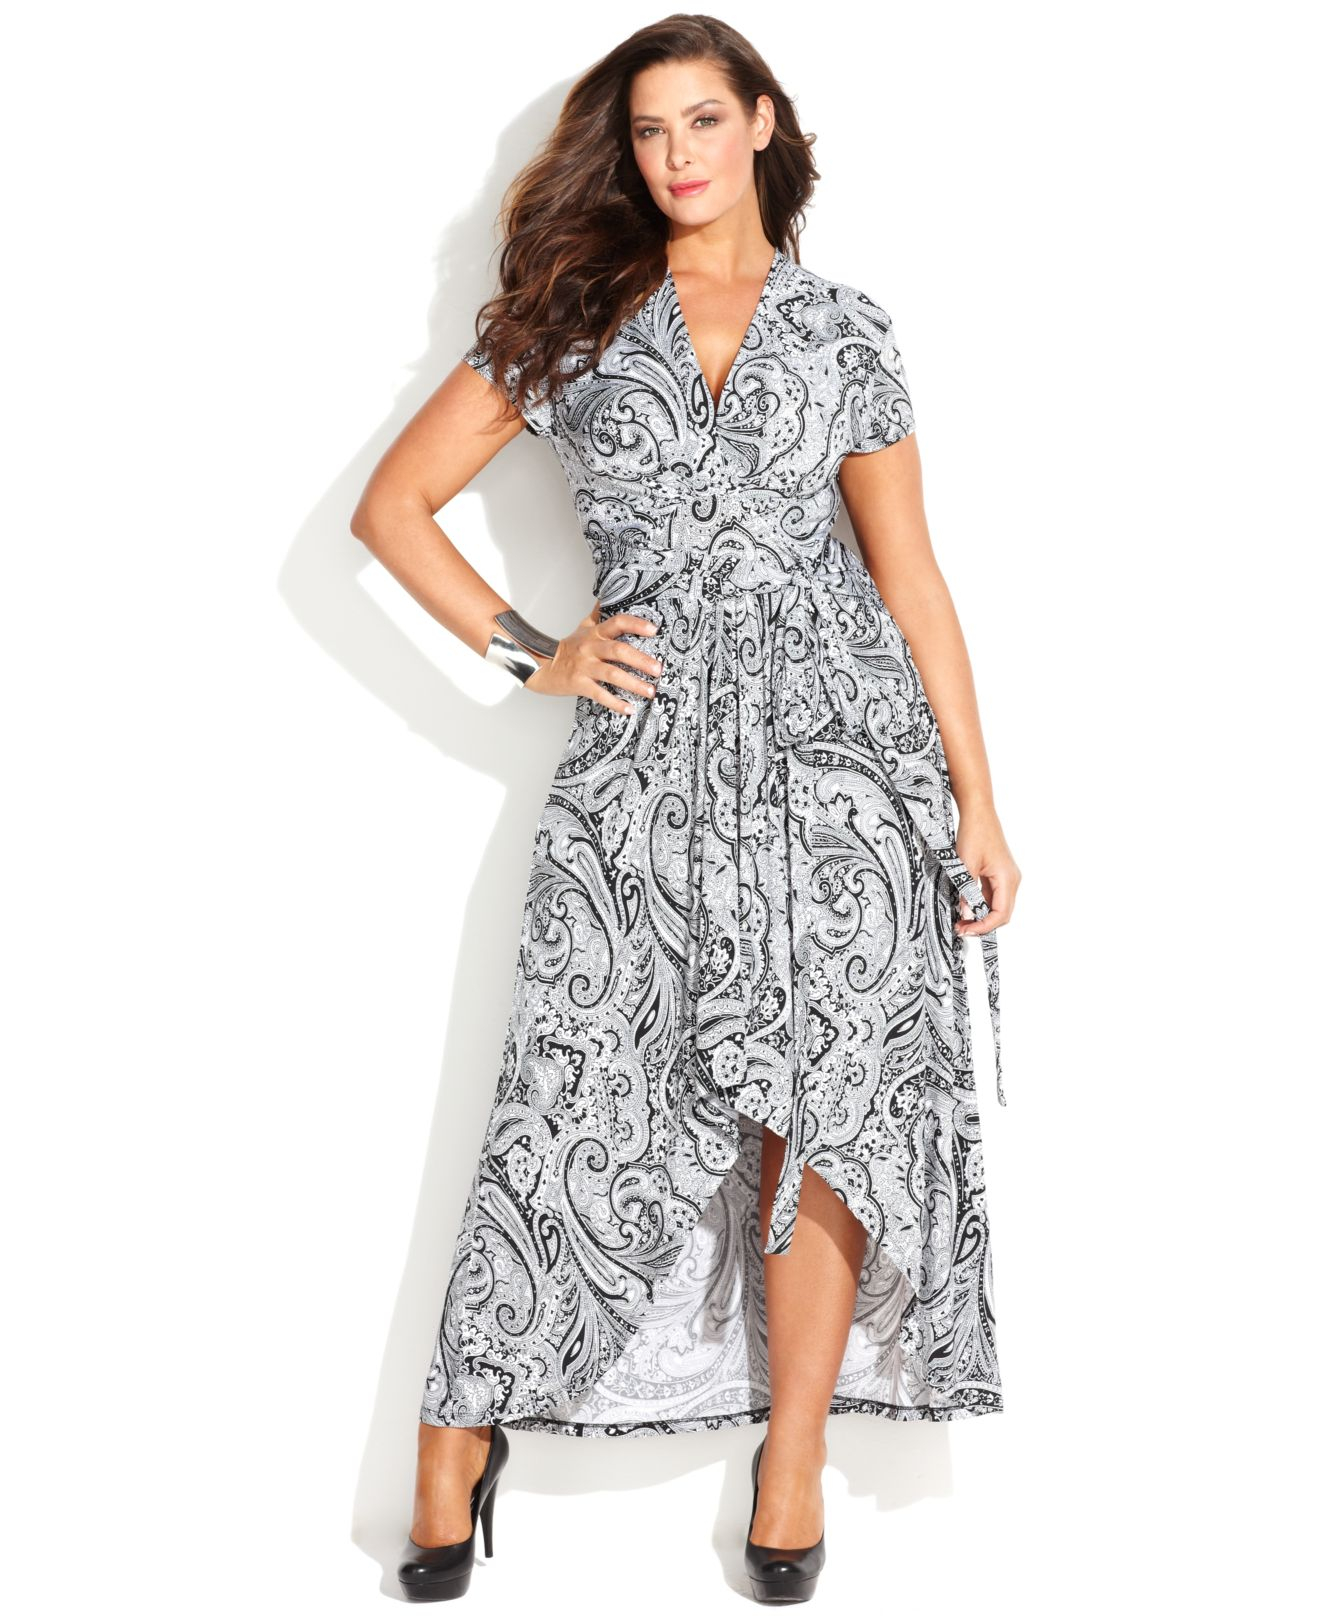 046c45d58e2 Long Black Wrap Dress Plus Size - Gomes Weine AG